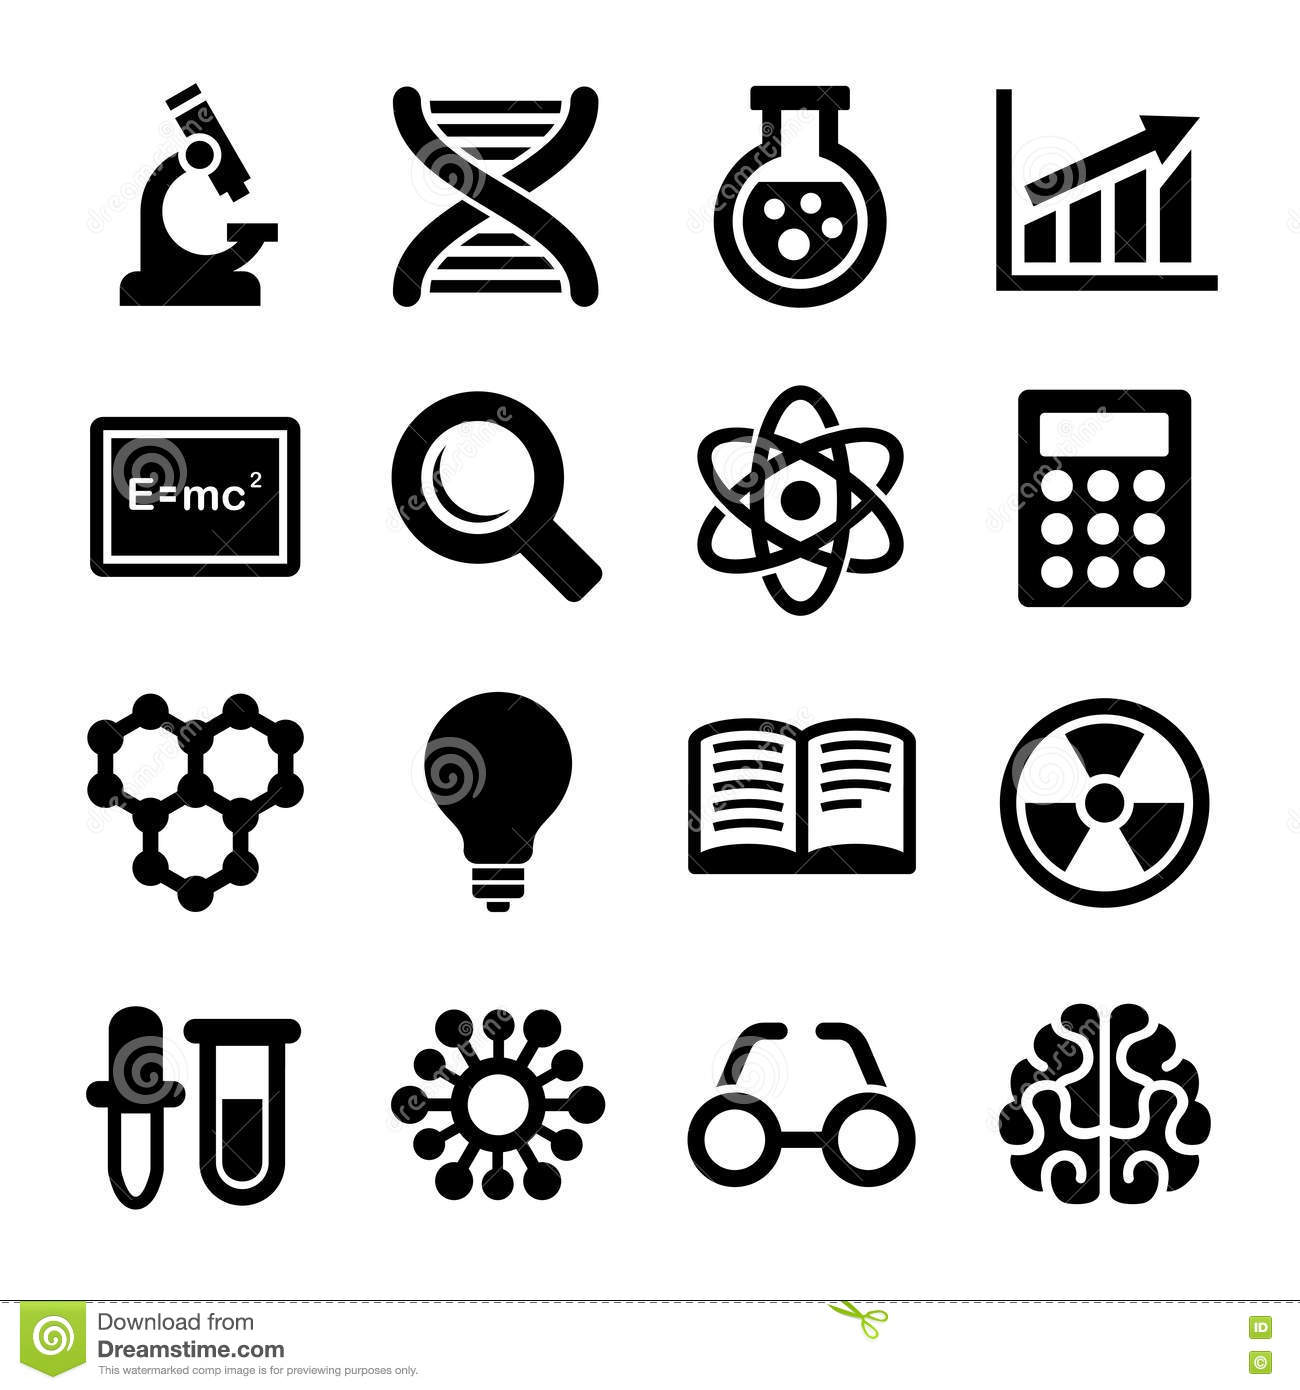 File Alchemy water symbol in addition WHMIS also Microscope Parts Worksheet Kids furthermore Walt Disney Logo   Transparent together with Ibm Logo Black   Transparent. on chemical clip art